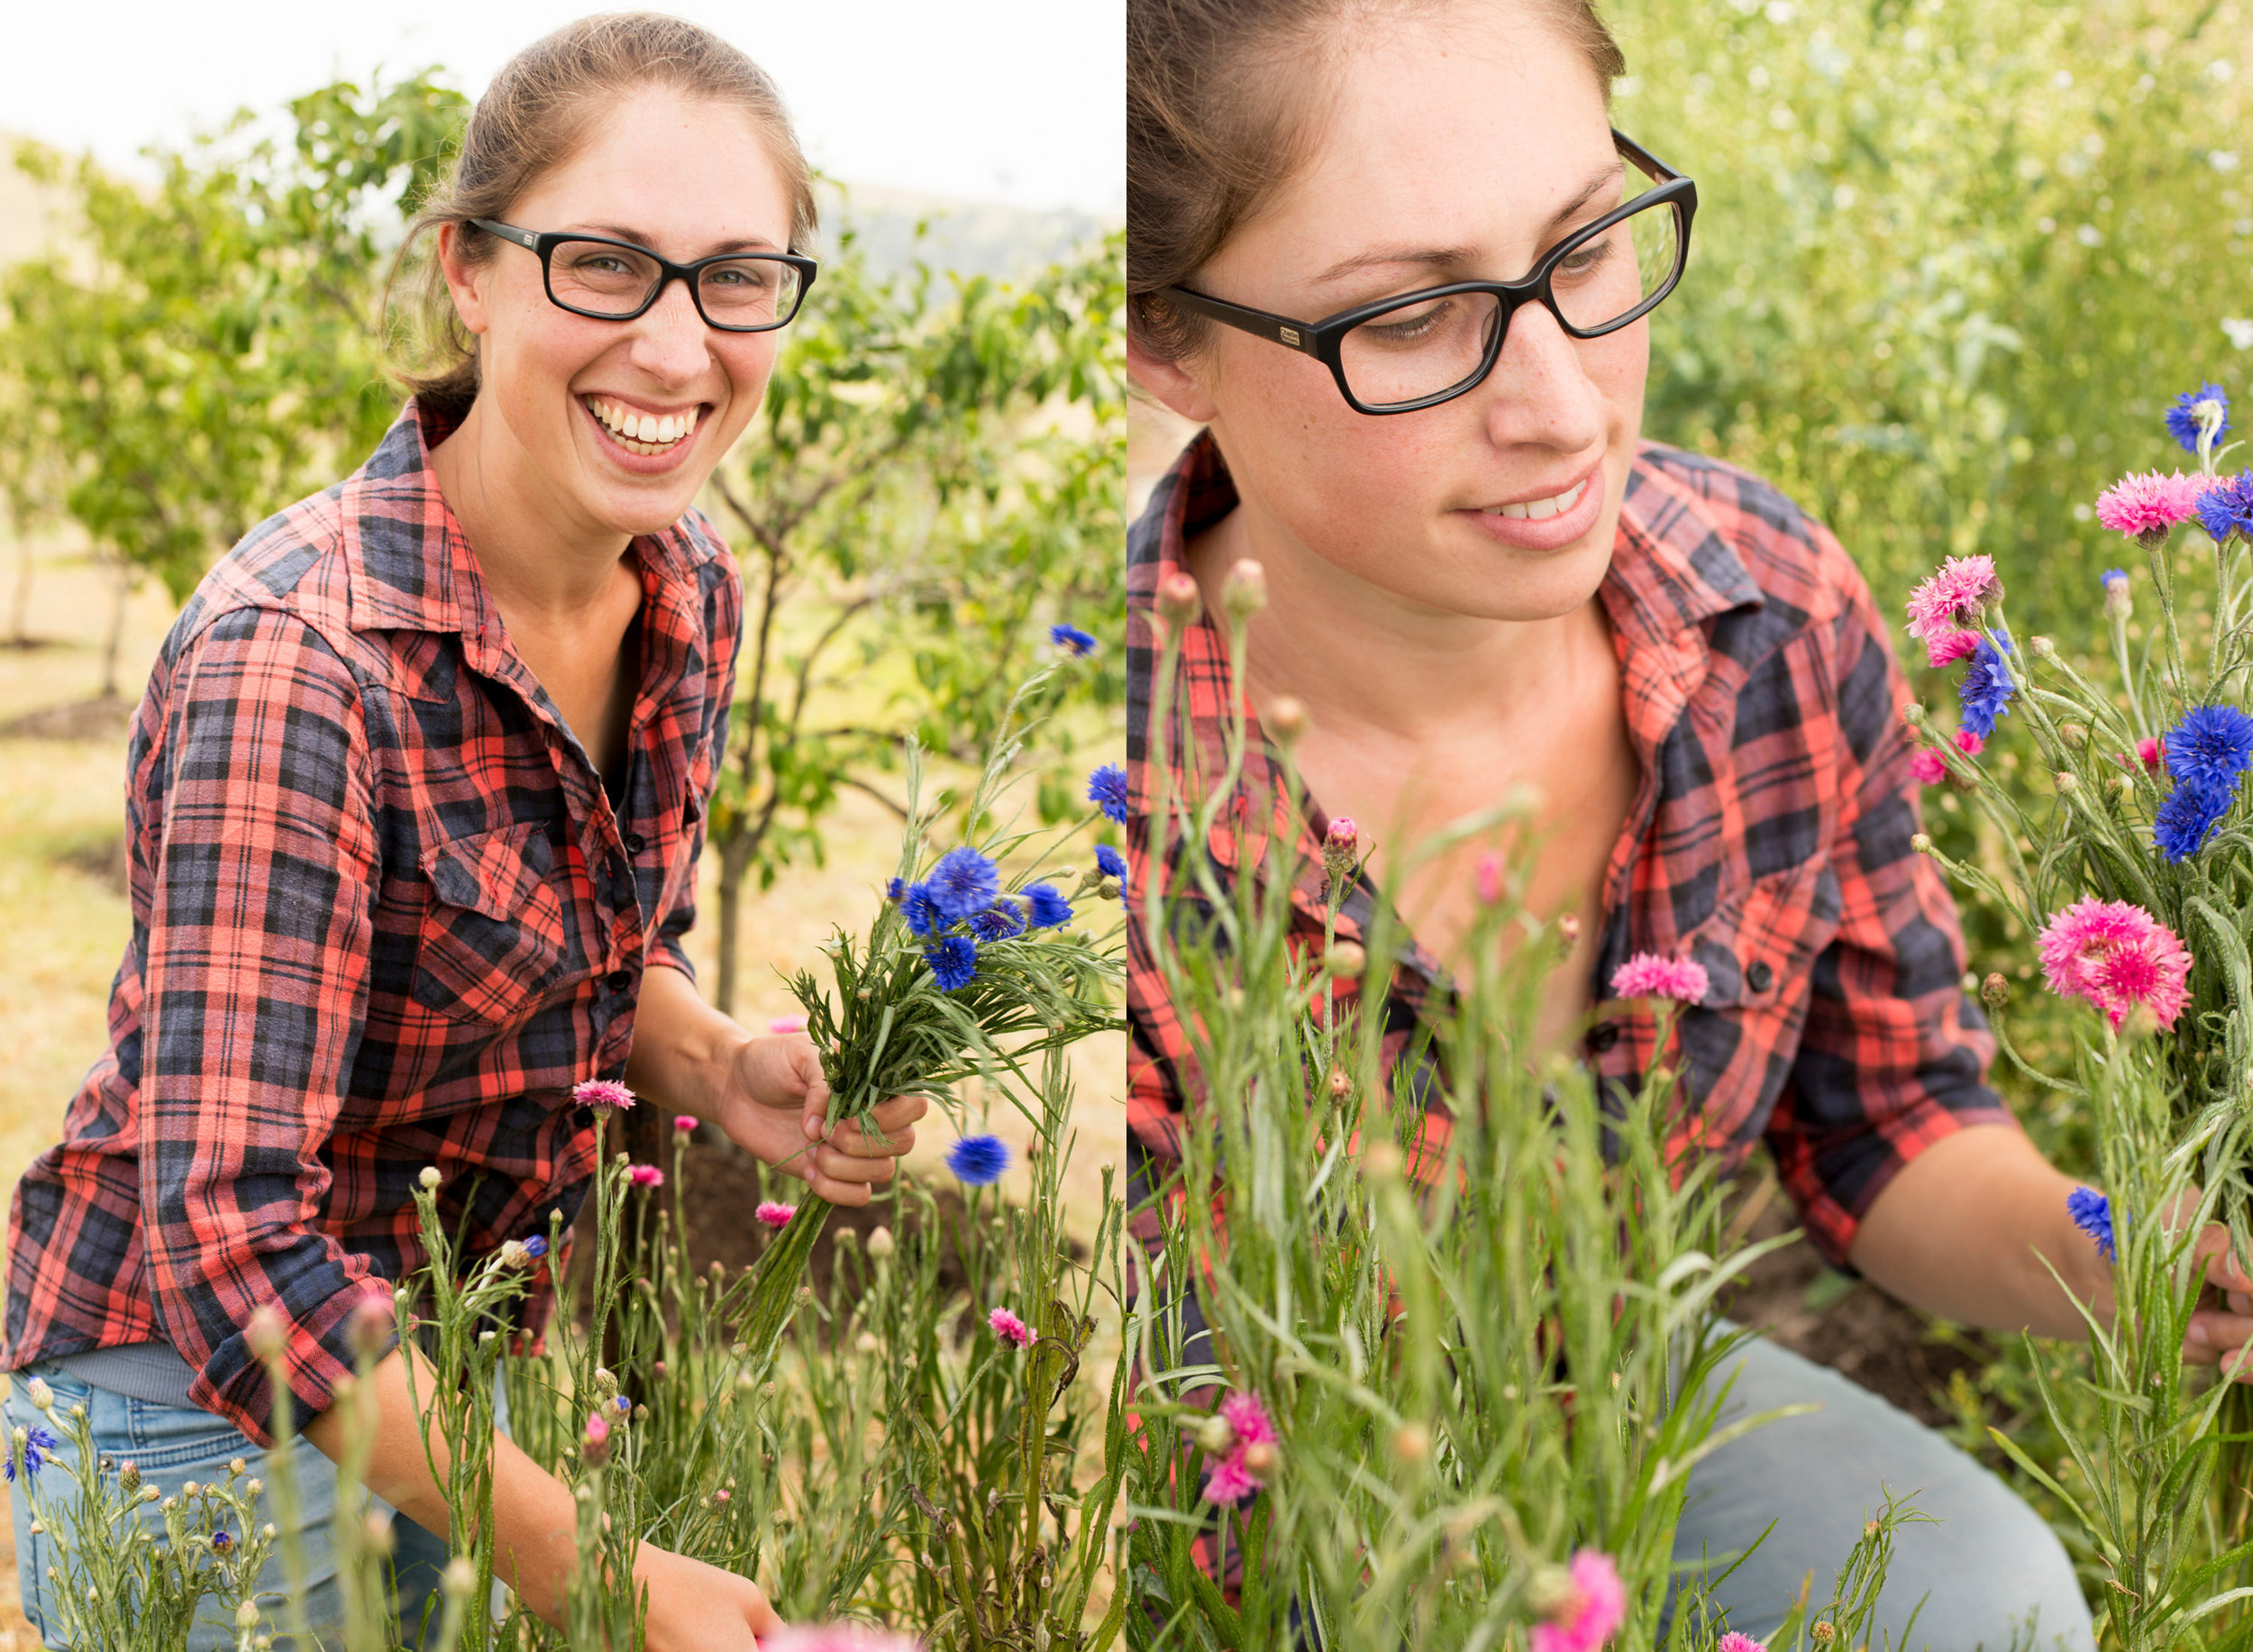 Vanessa picks fresh blooms for their weekly CSA posies